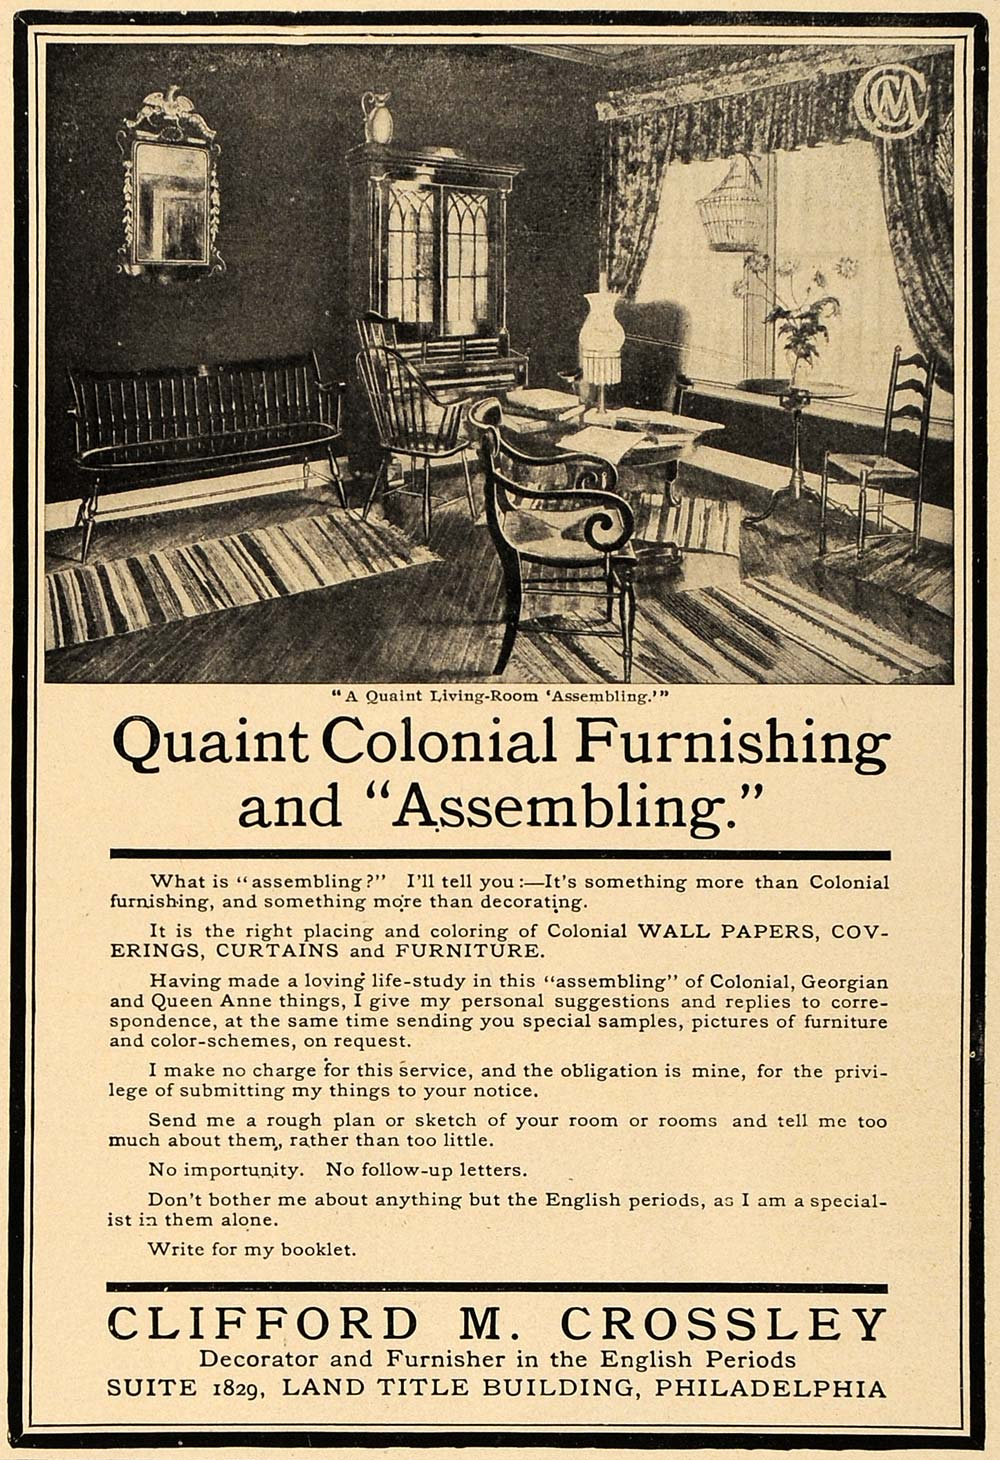 1906 Ad Clifford M Crossley Quaint Colonial Furnishing - ORIGINAL CL8